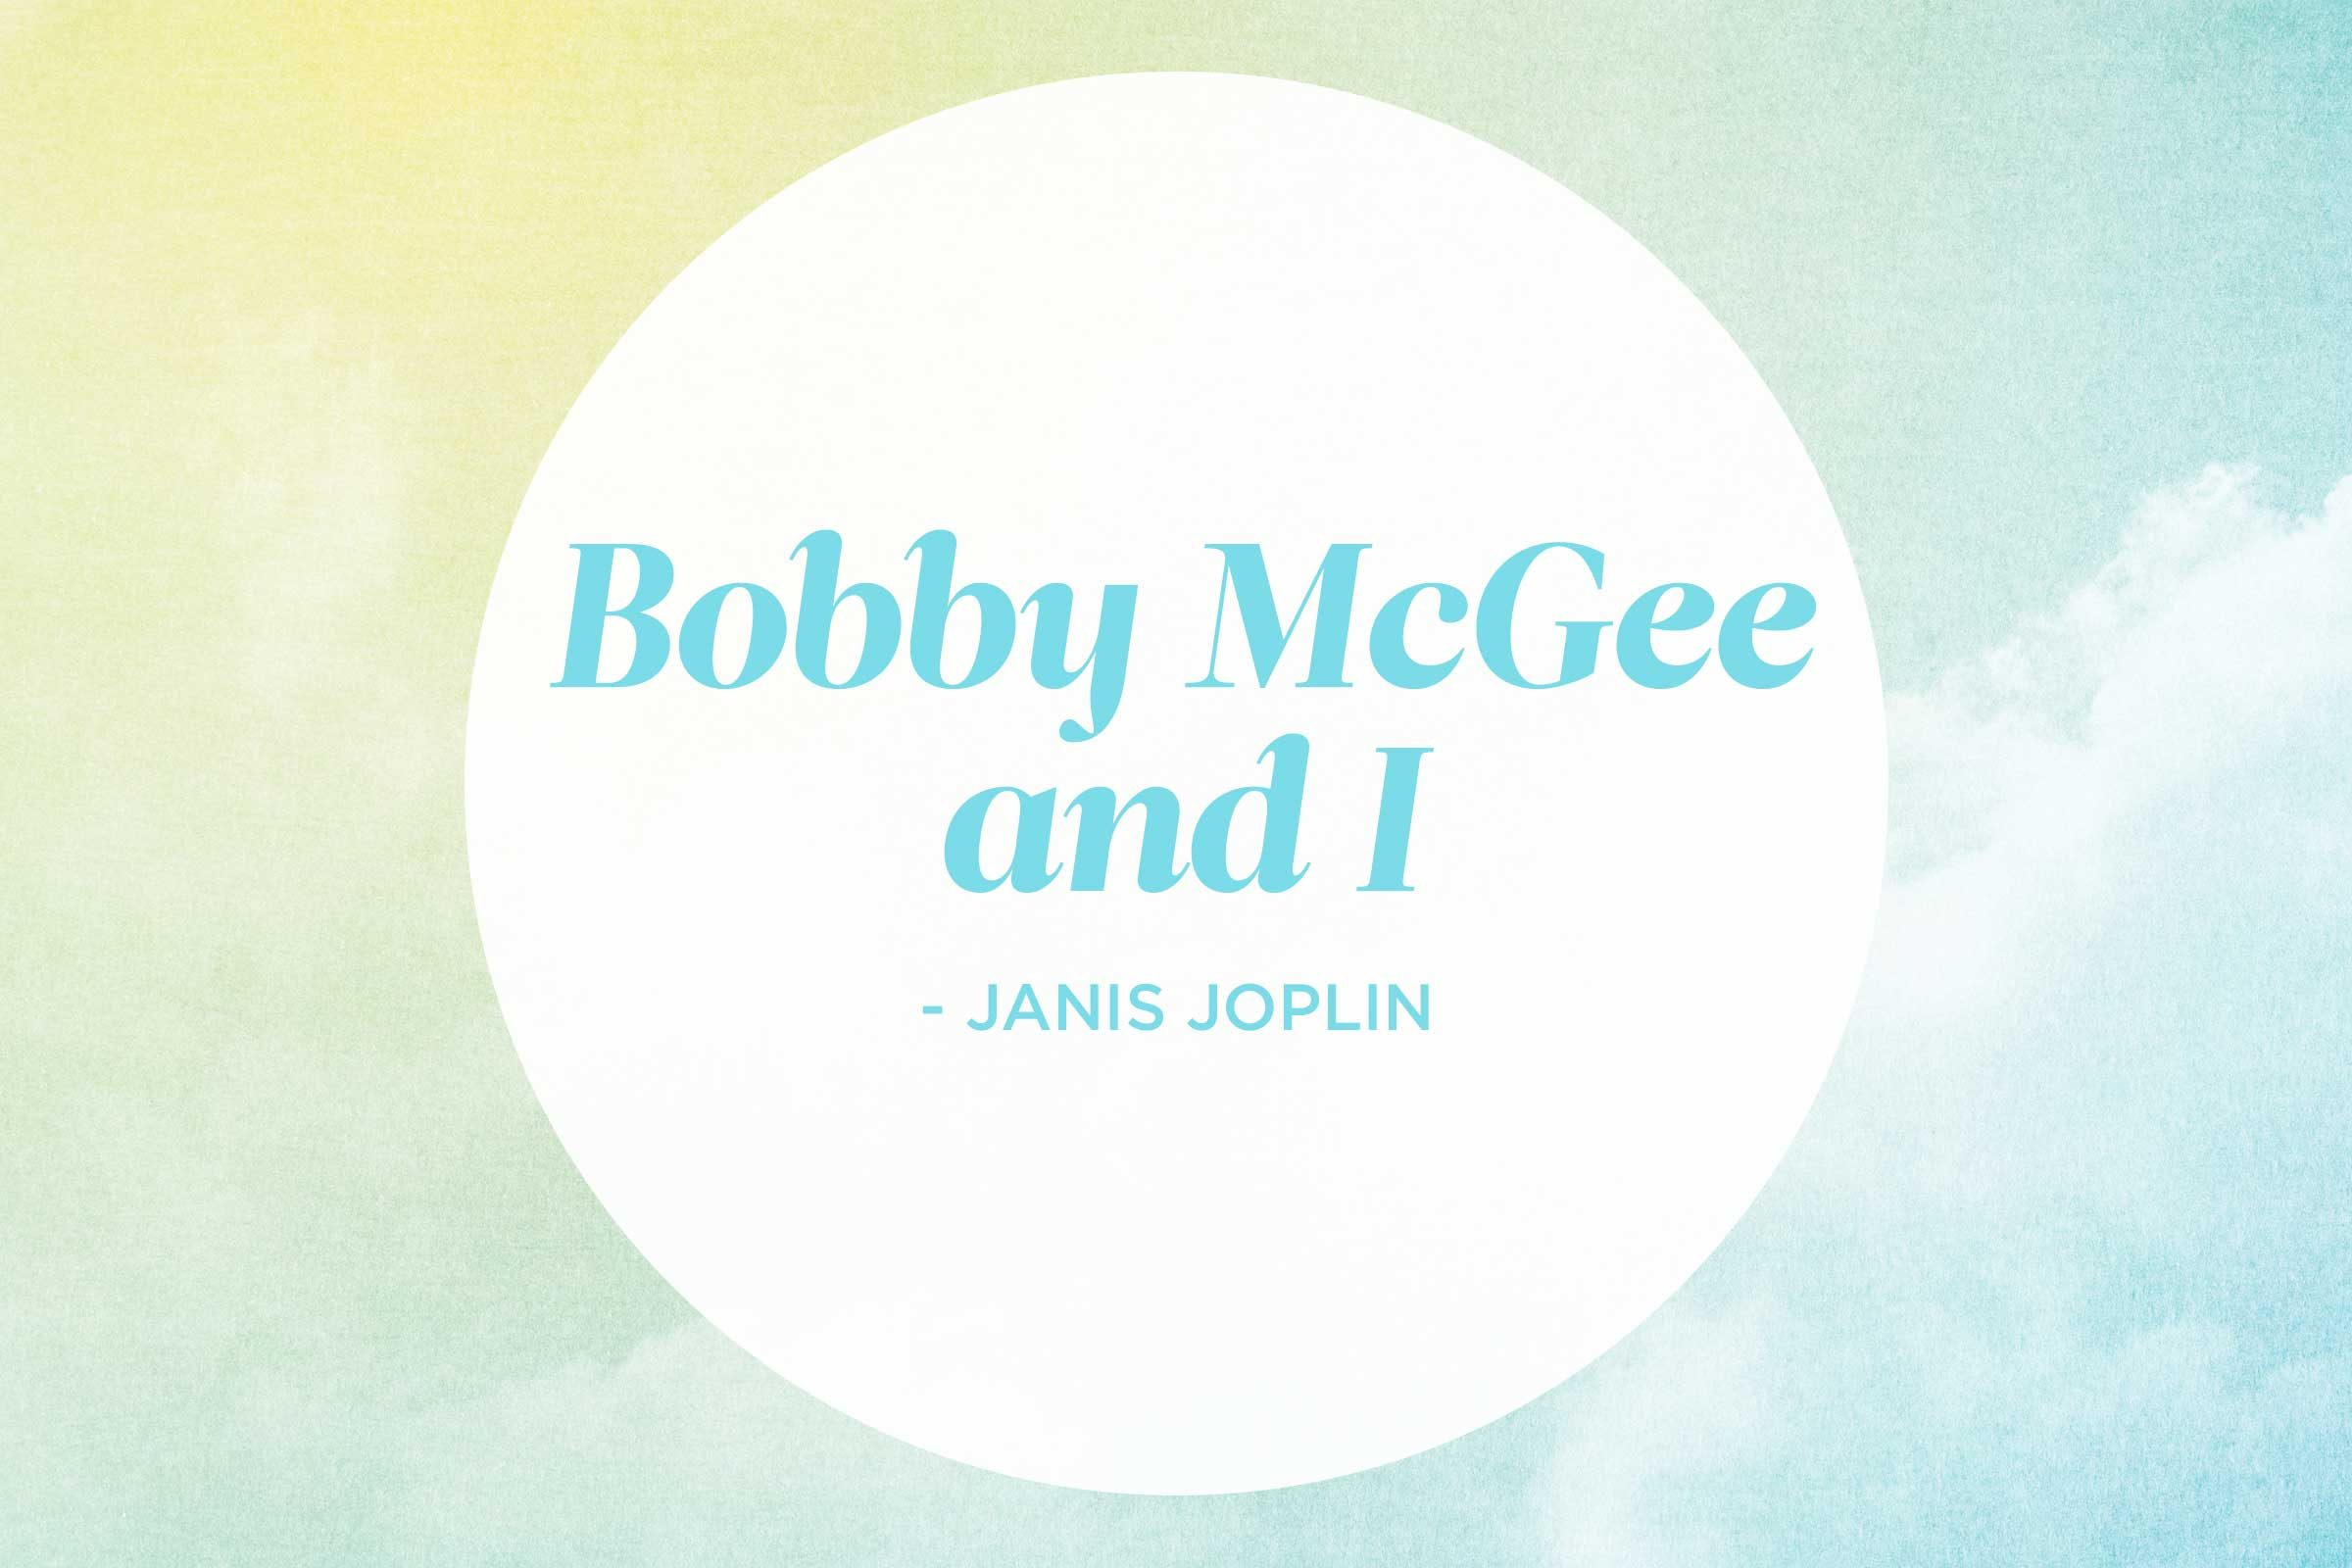 'Me and Bobby McGee' by Janis Joplin